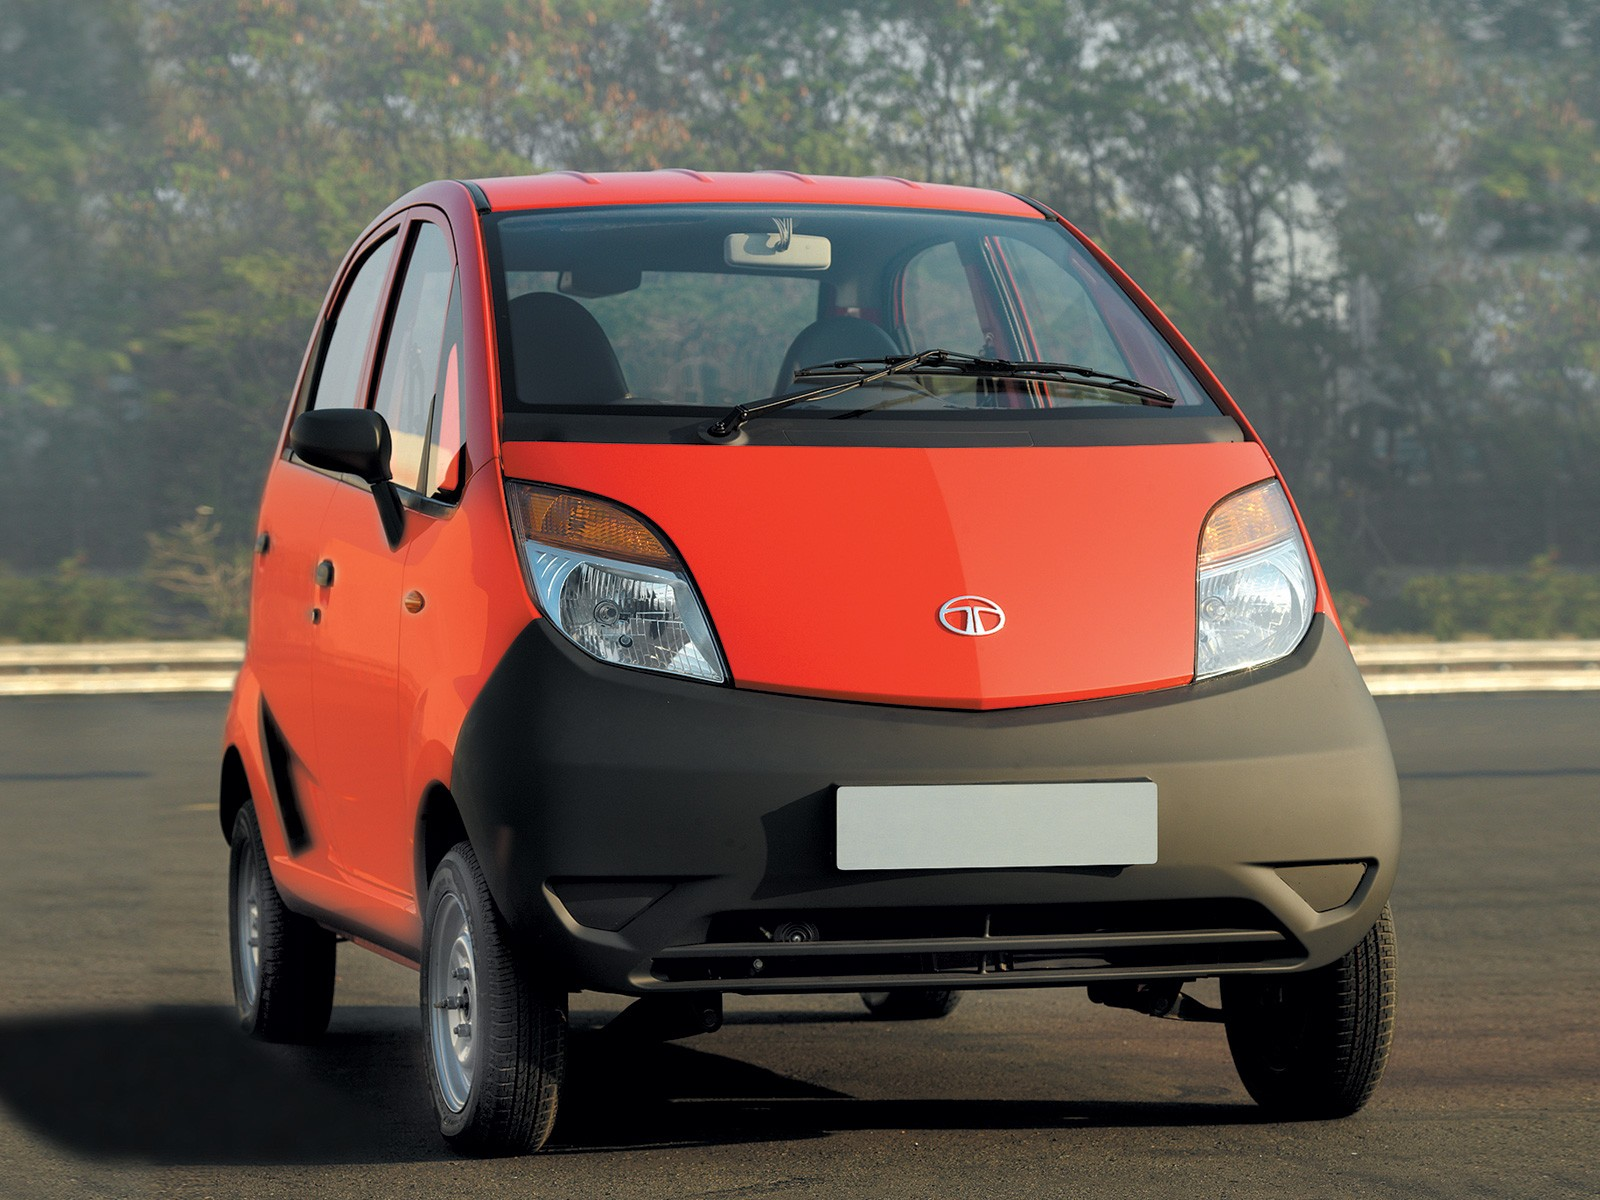 tata nano the peoples car Tata company was created in 1868 by the tata family and is considered today the general electric of india tata nano is a city car, released on jan 10, 2008 it is an inexpensive car with a target audience of rising middle class families as well as the younger generation india is part of the bric .